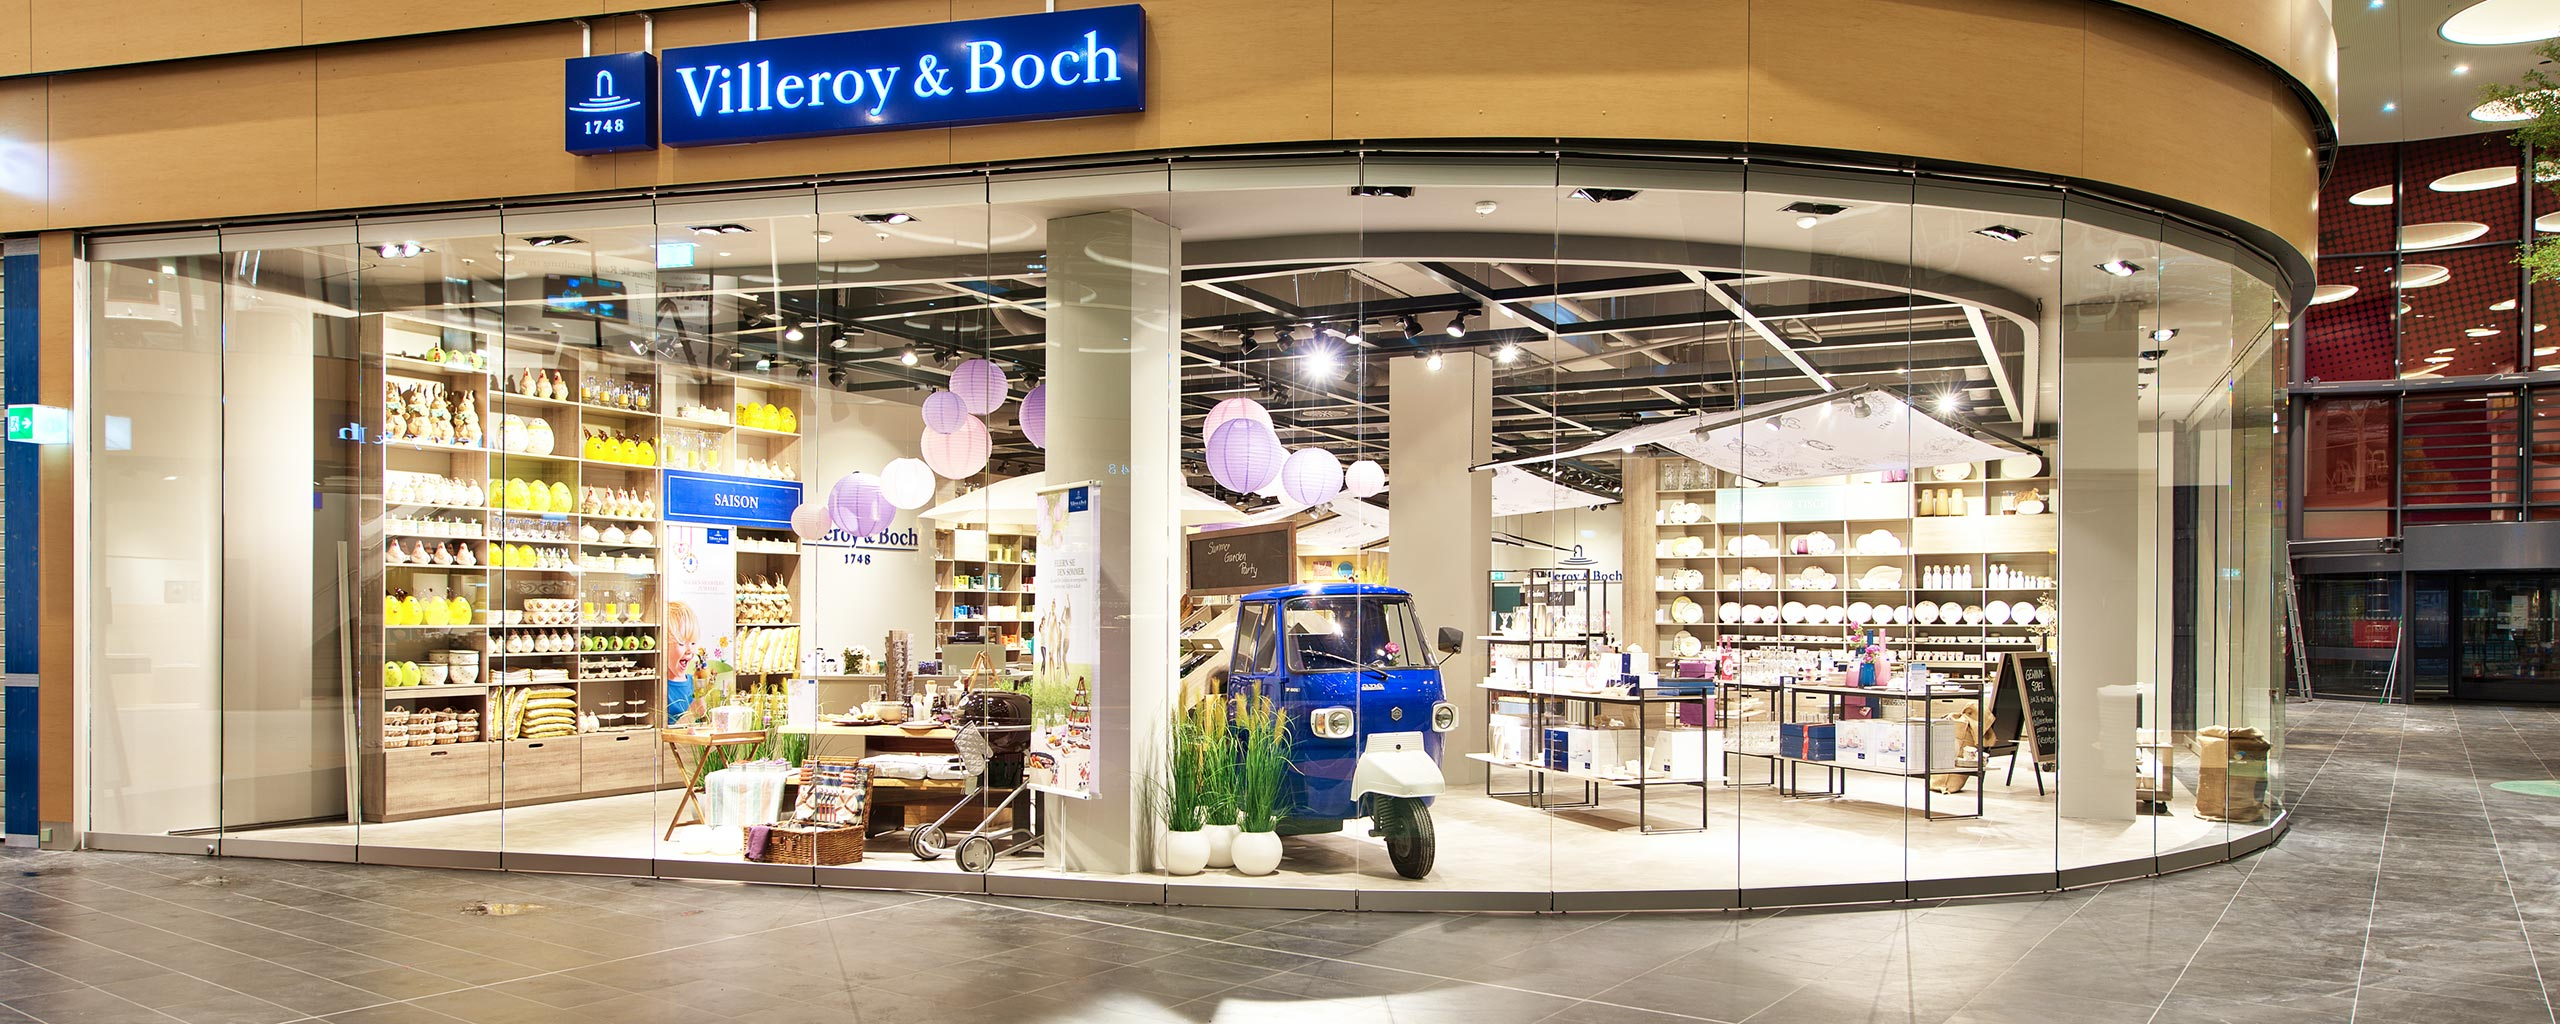 Villeroy & Boch im LUV SHOPPING in Lübeck